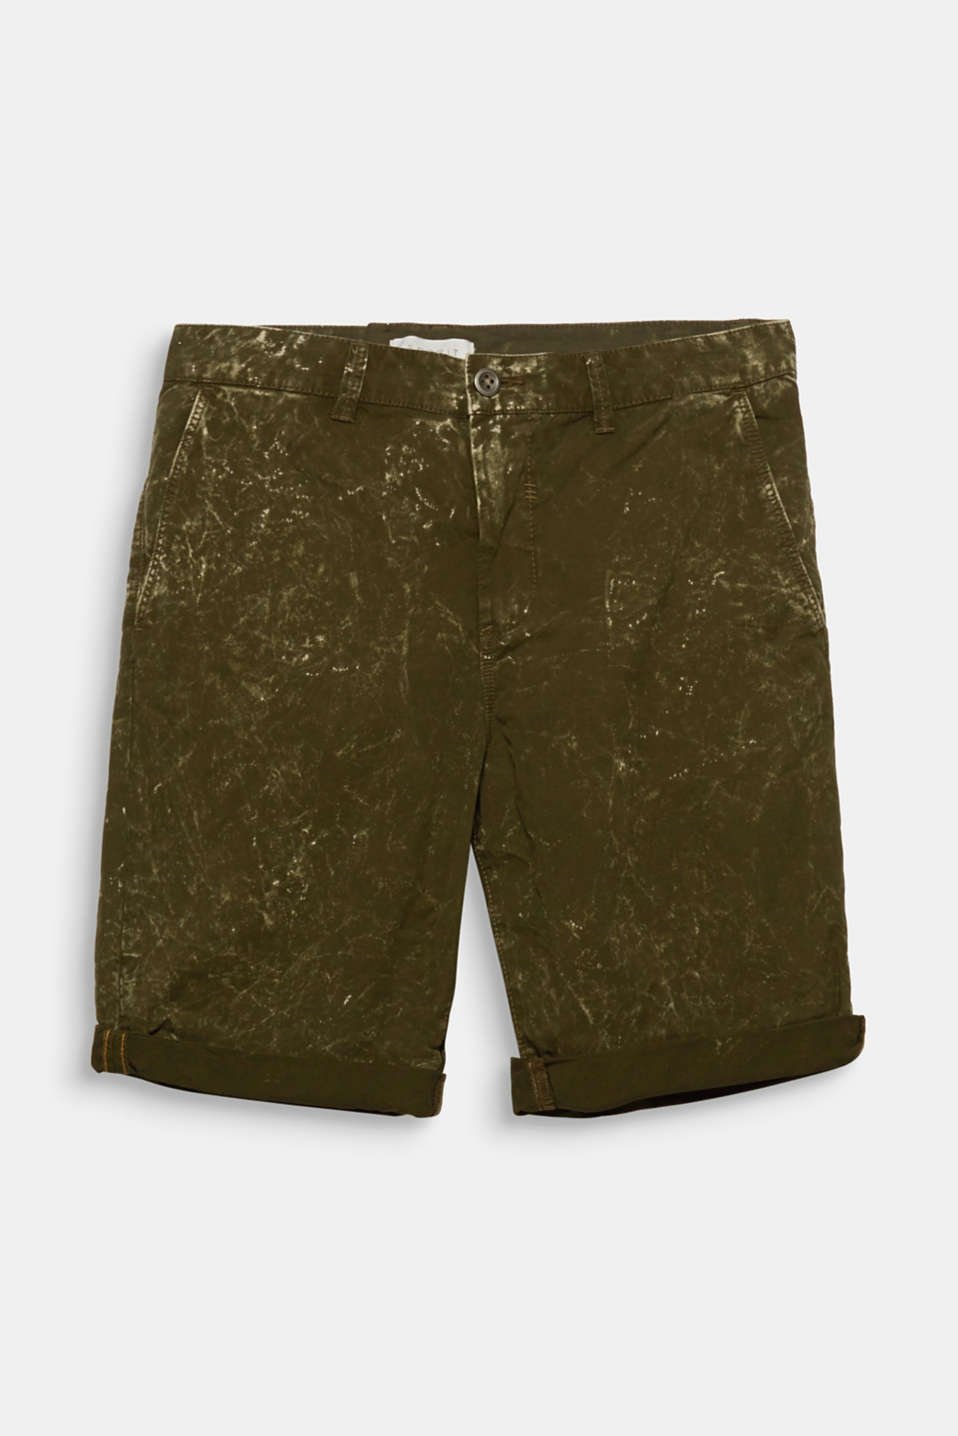 Acid washed – an eye-catcher! Go through the summer with these chino shorts with an exciting texture.